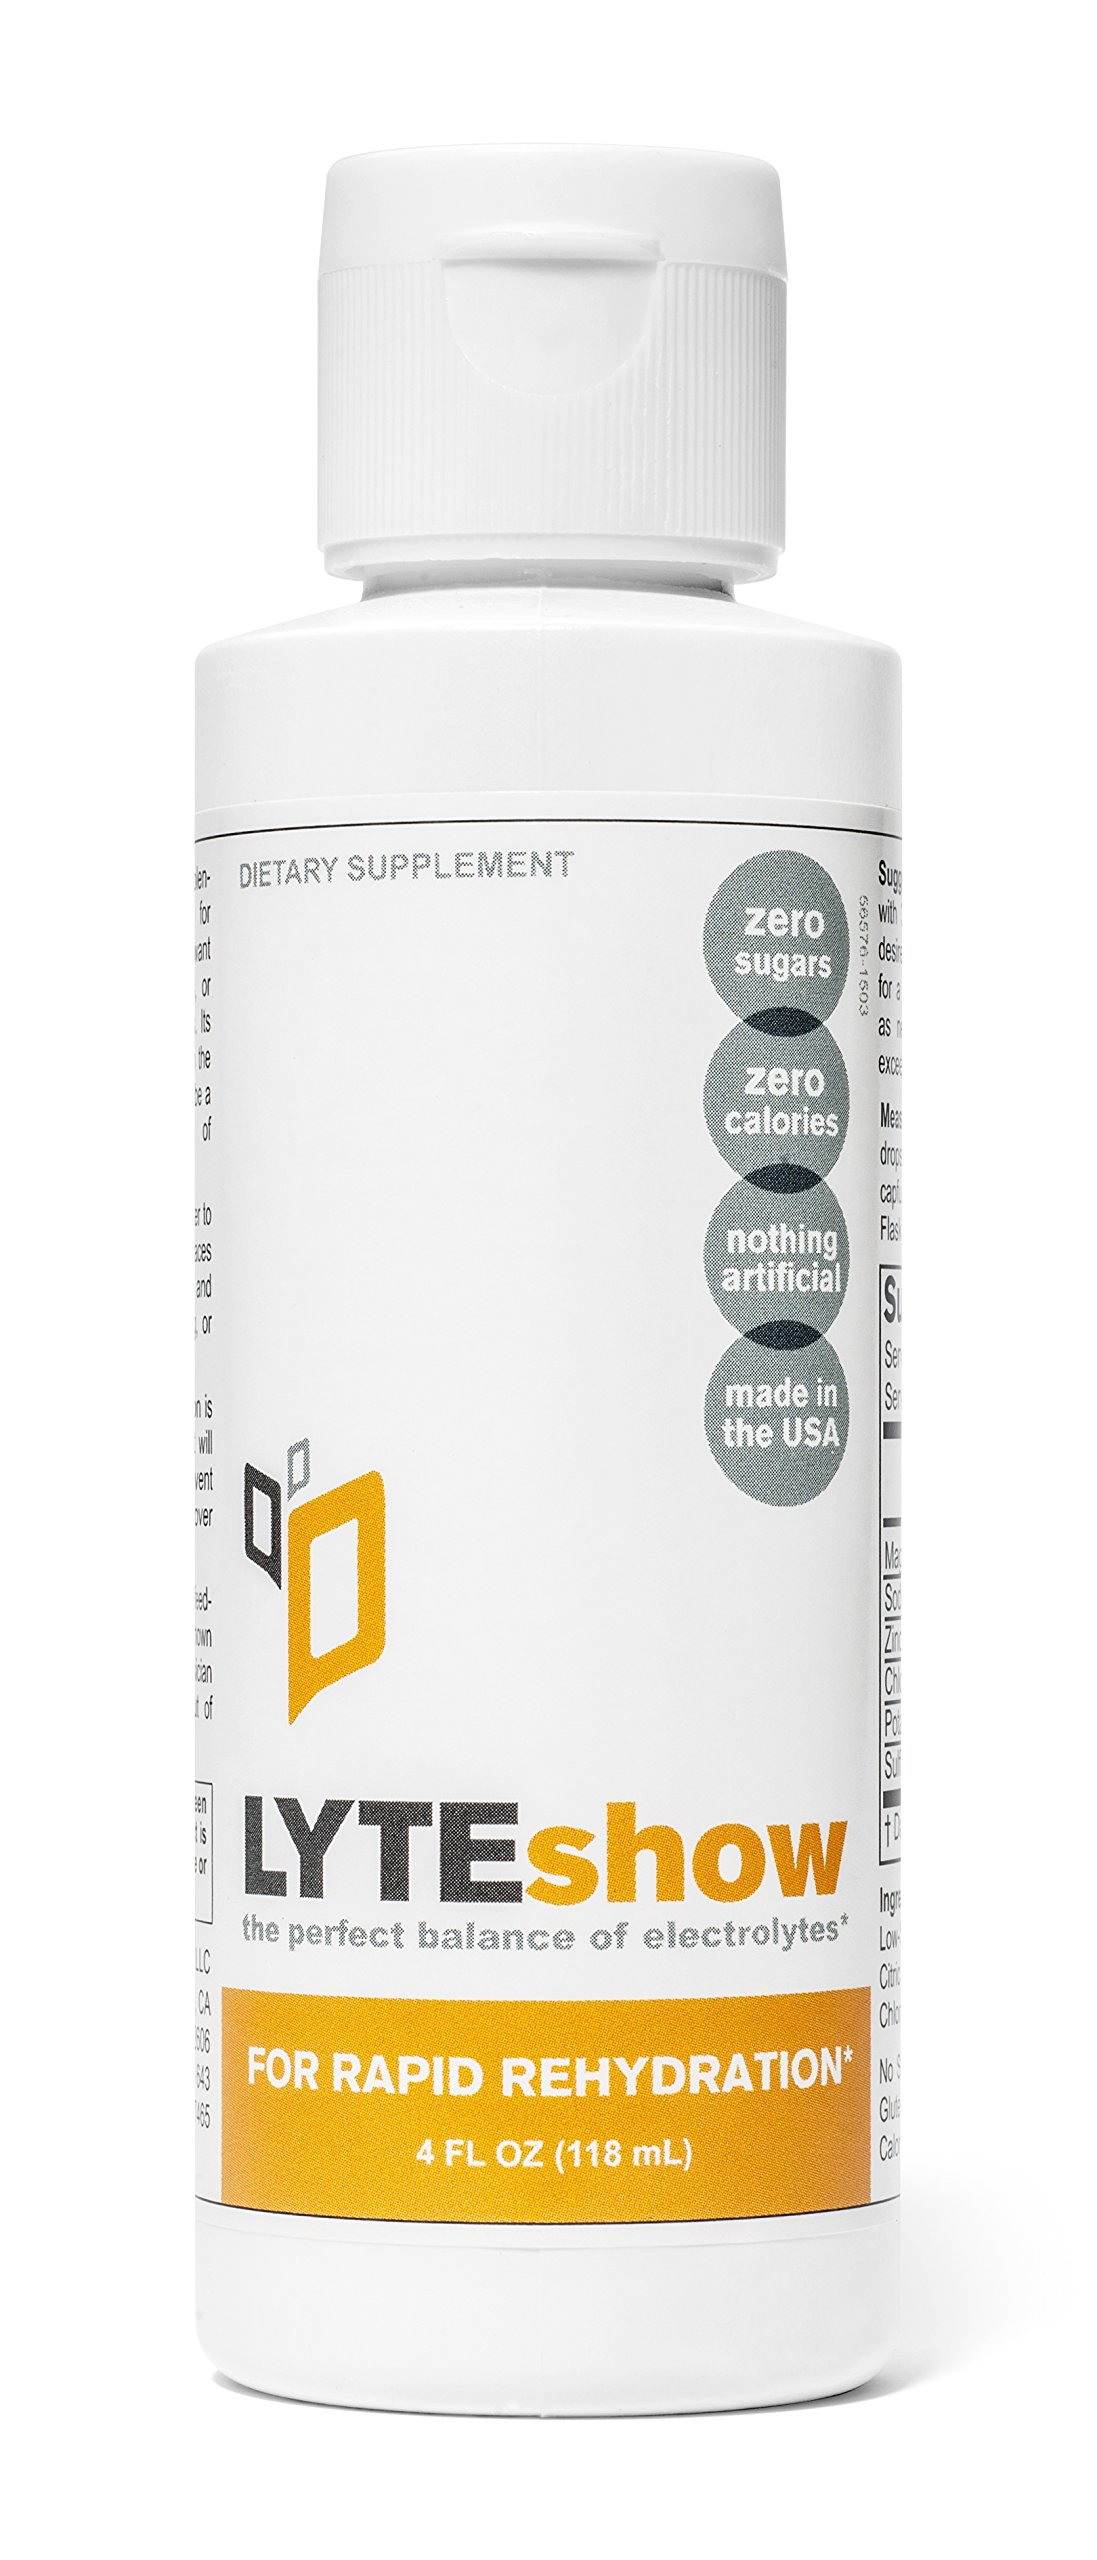 LyteShow (8 Bottles) - Electrolyte Concentrate for Rapid Rehydration - NO Sugars, NO Additives - 320 Servings (With Magnesium, Potassium, Zinc)